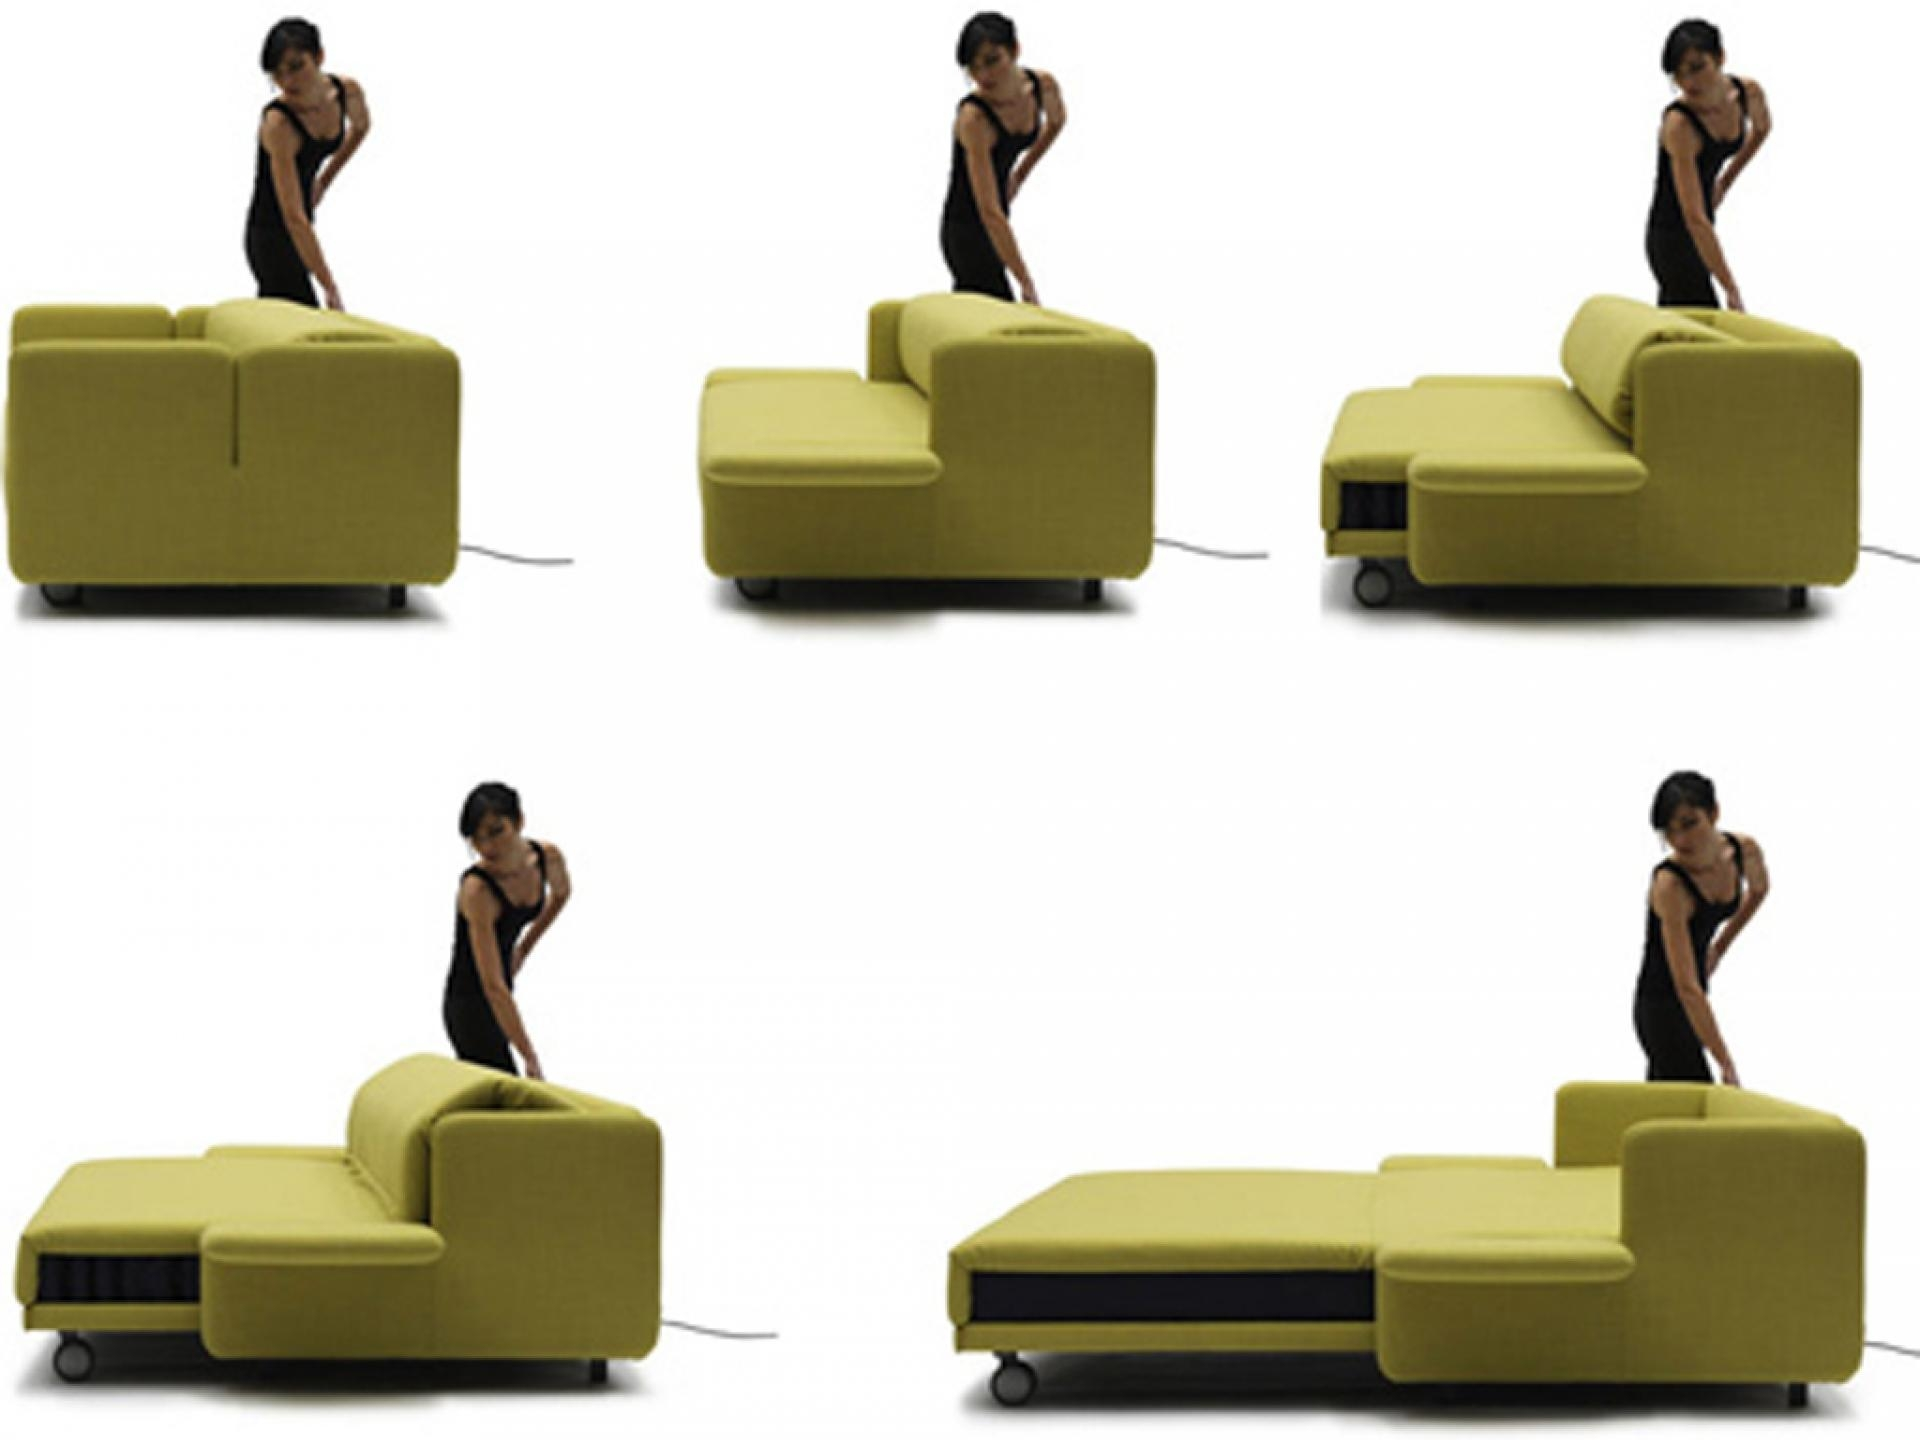 Small Scale Sofas Uk | Tehranmix Decoration Intended For Small Scale Sofas (Image 15 of 20)